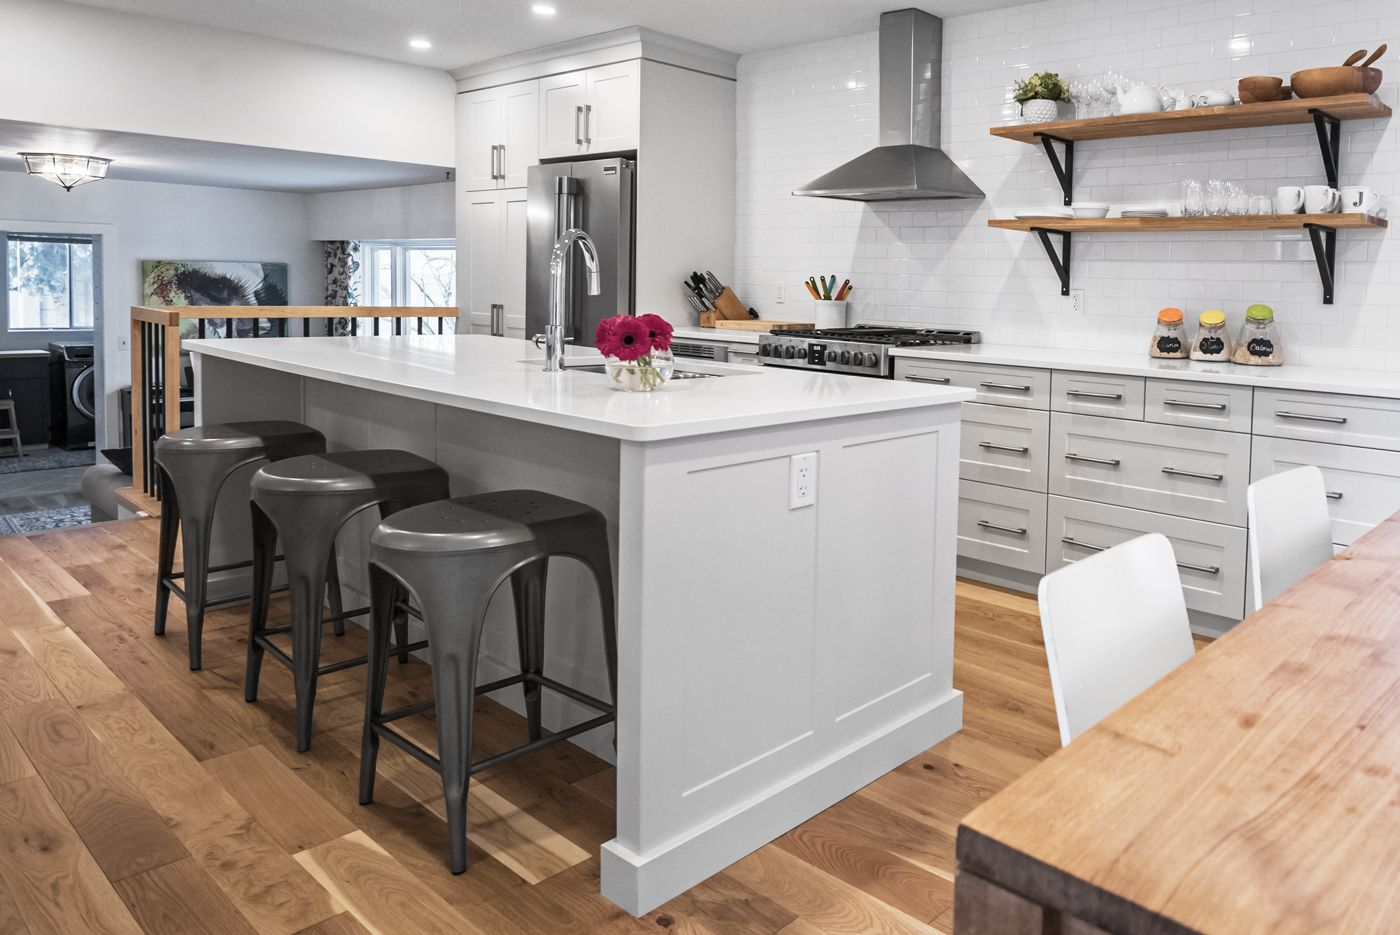 Sawyer Kitchen Cabinets By Superior For Your Bath Laundry Or Entertainment Room